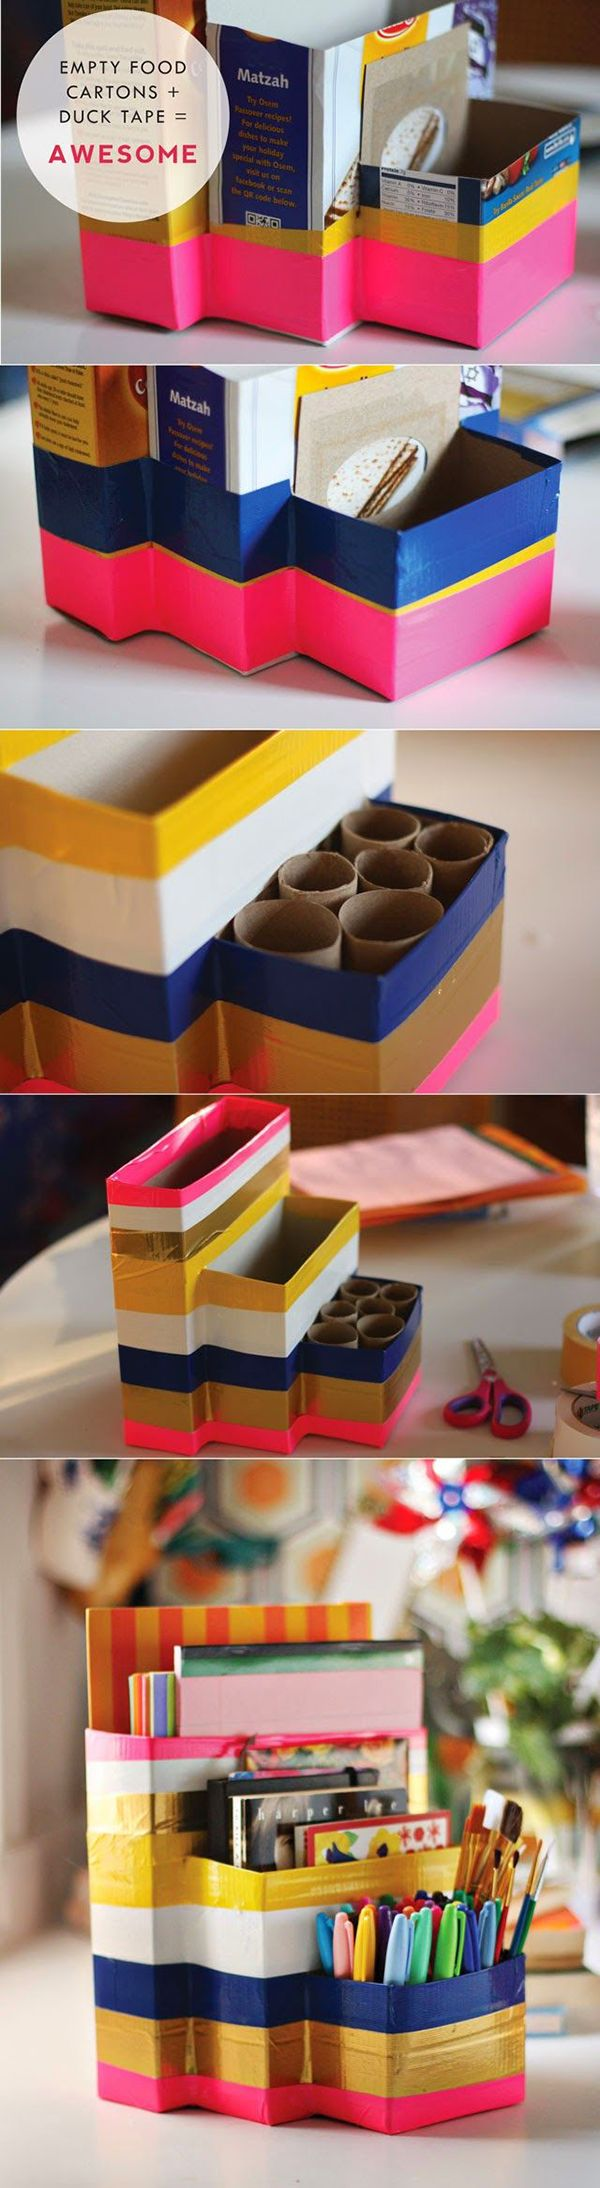 DIY Caddy for pens/papers